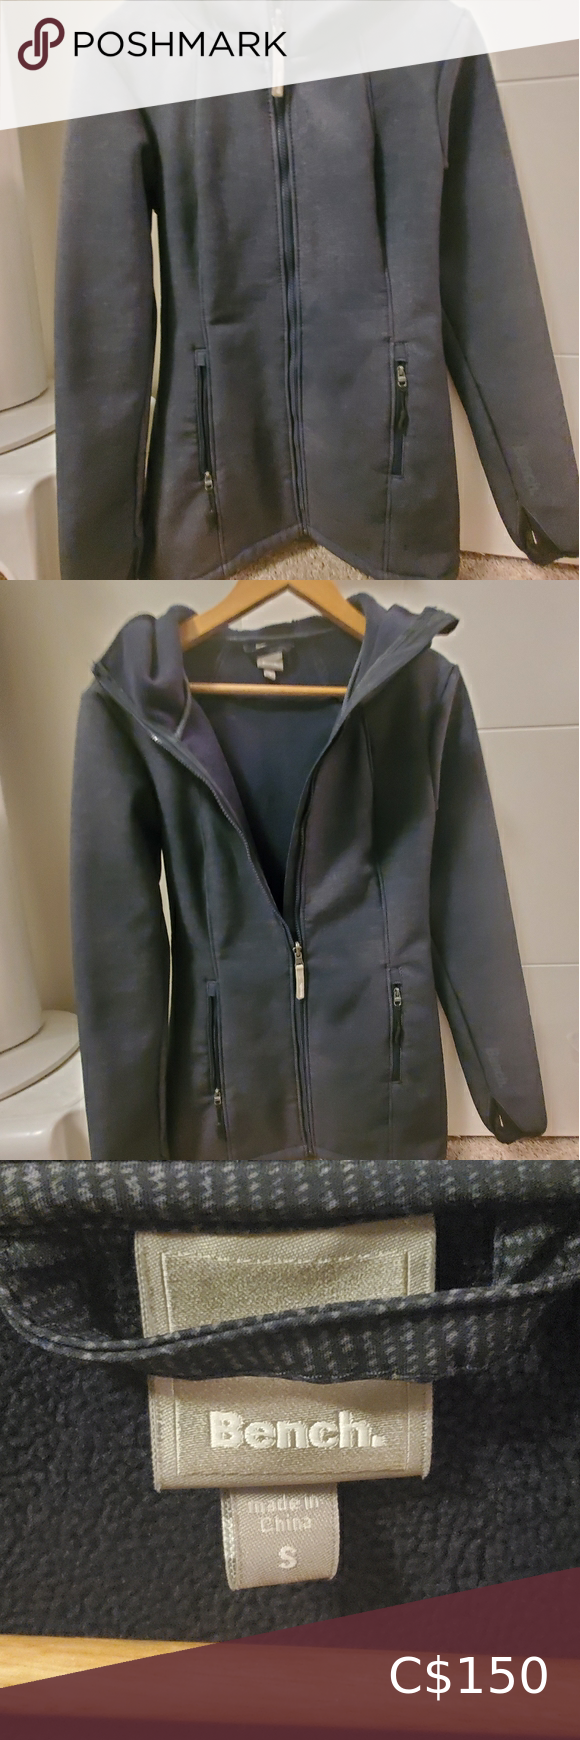 Bench Coat Bench Coat In A Realy Good Condition Fall Spring Jacket Bench Jackets Coats Bench Jackets Bench Coats Spring Jackets [ 1740 x 580 Pixel ]